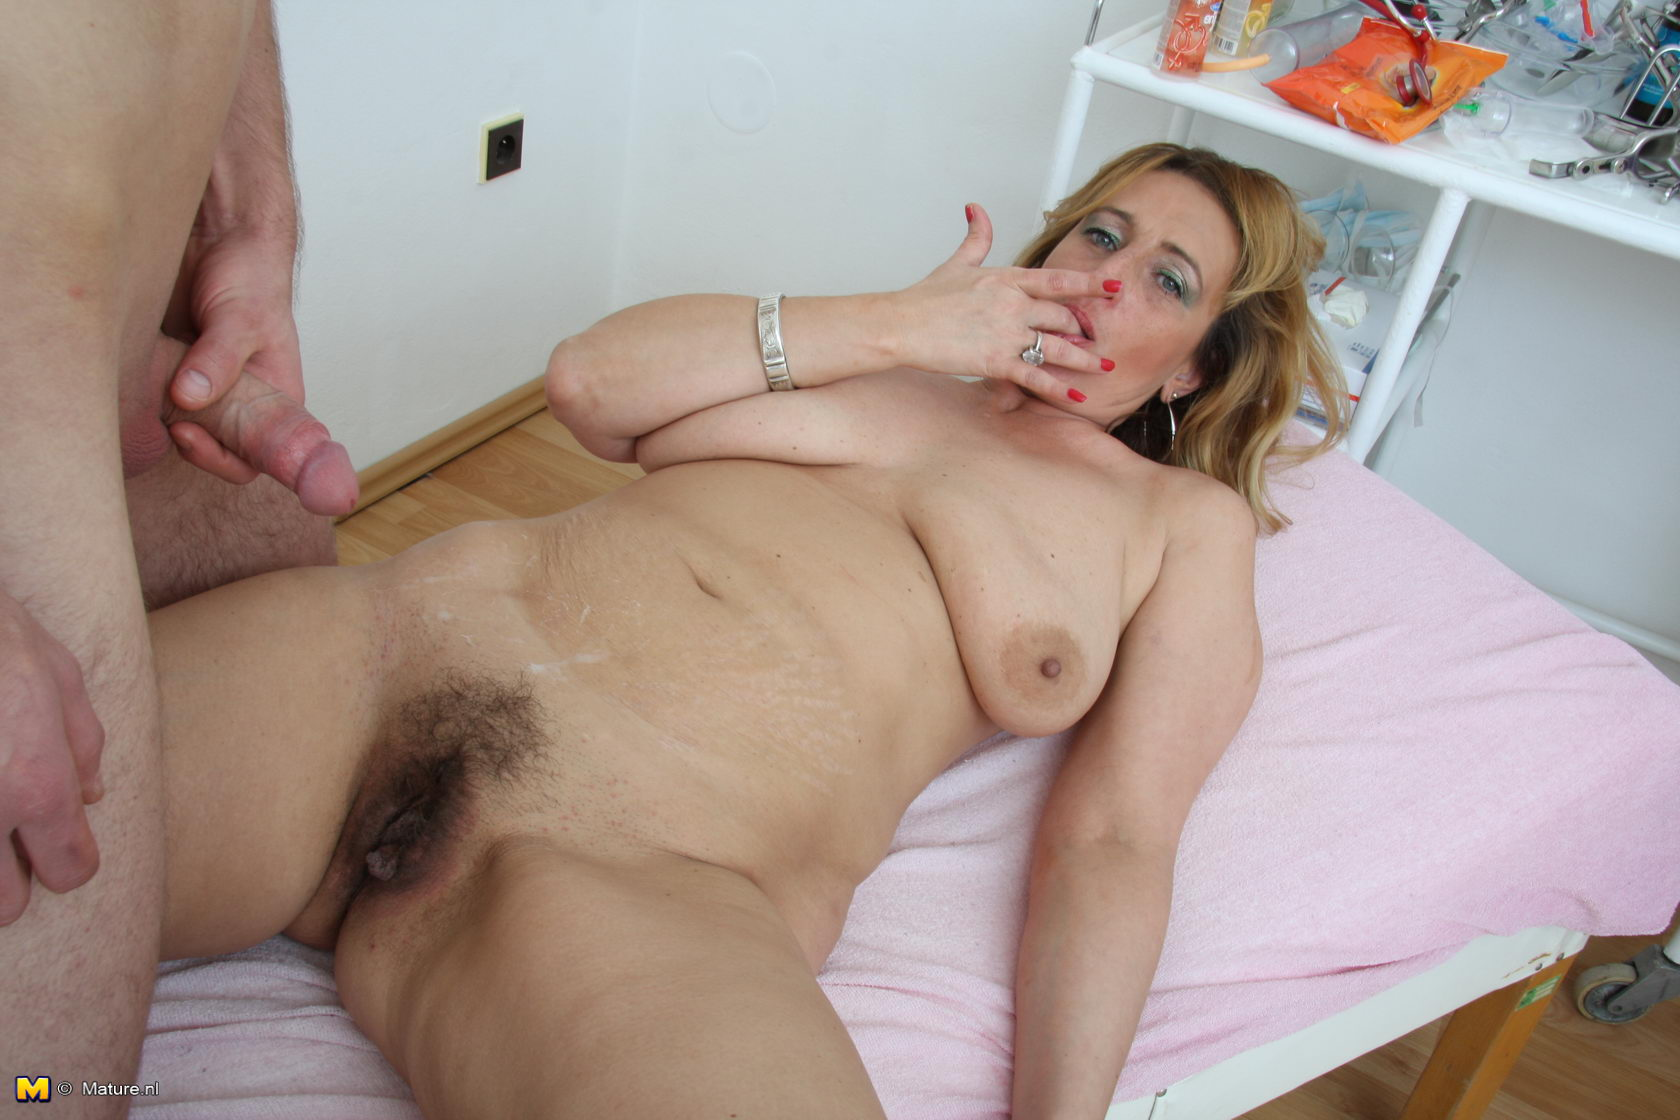 Big dick in milf pic